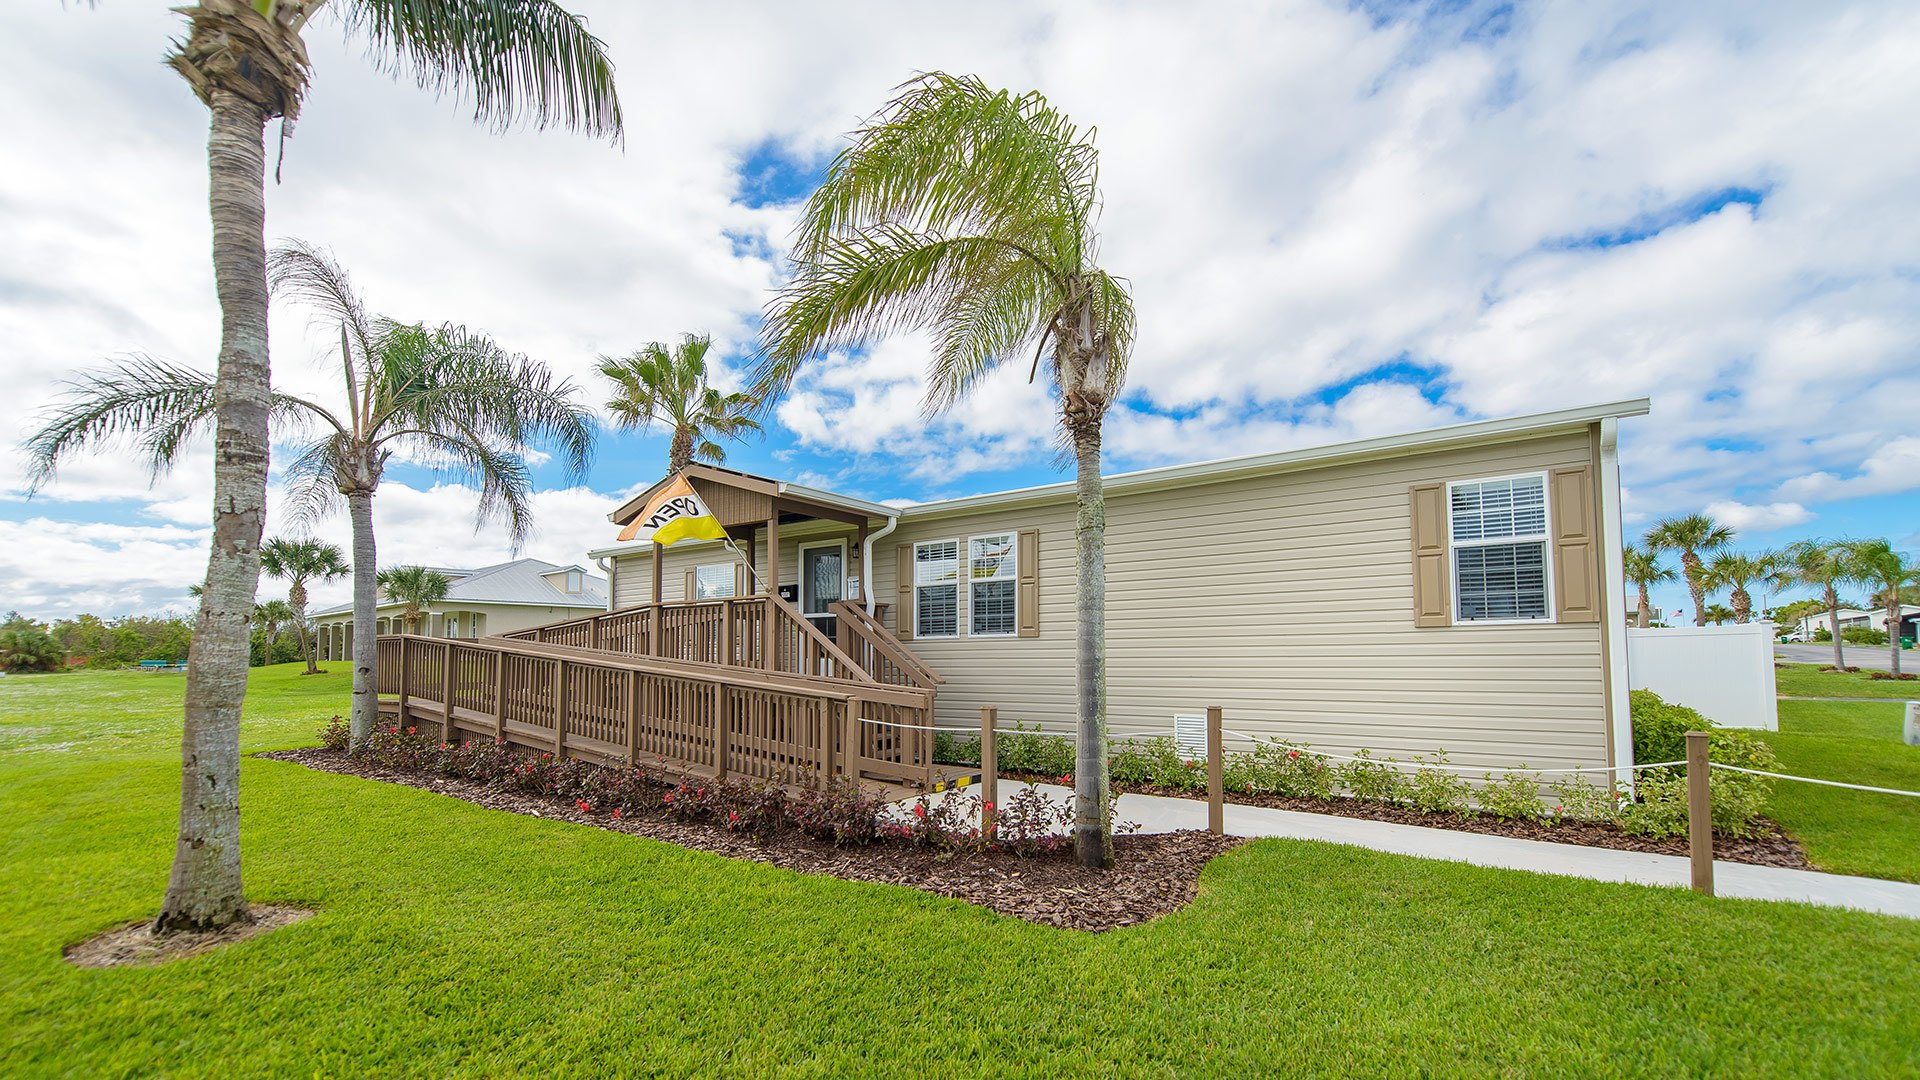 Pelican Bay 55+ Manufactured Homes Community Residential Model in Micco, FL